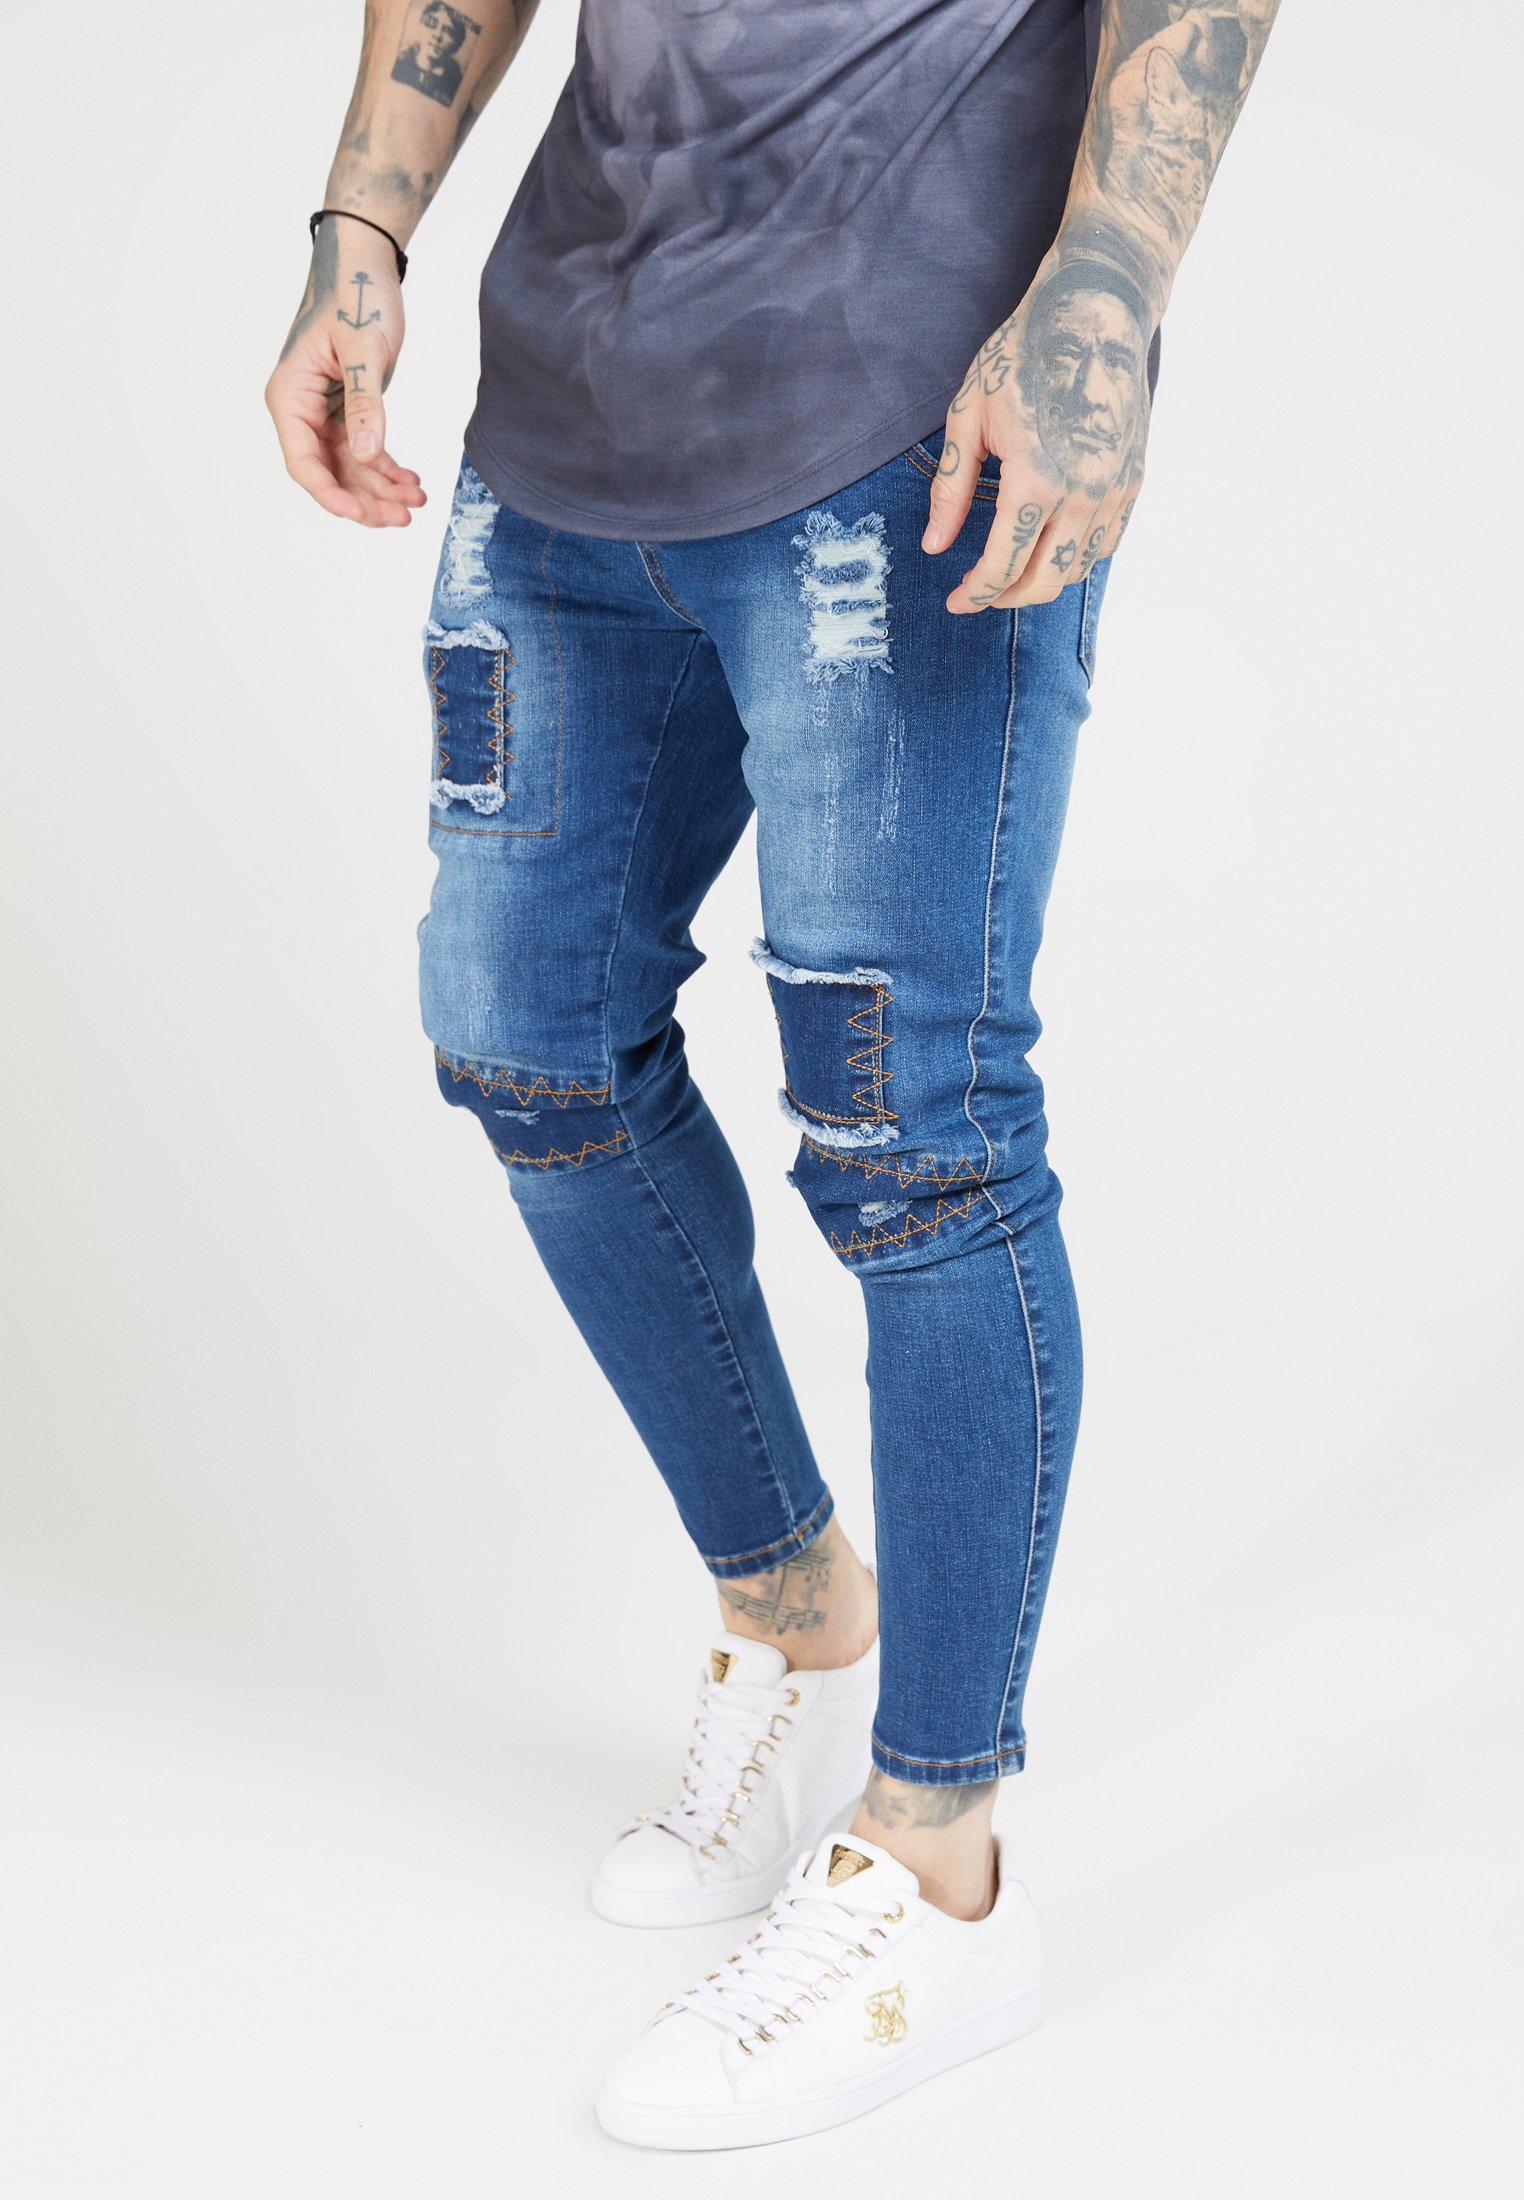 Washed Blue Fit Siksilk Skinny PatchJeans uKc1lF5TJ3